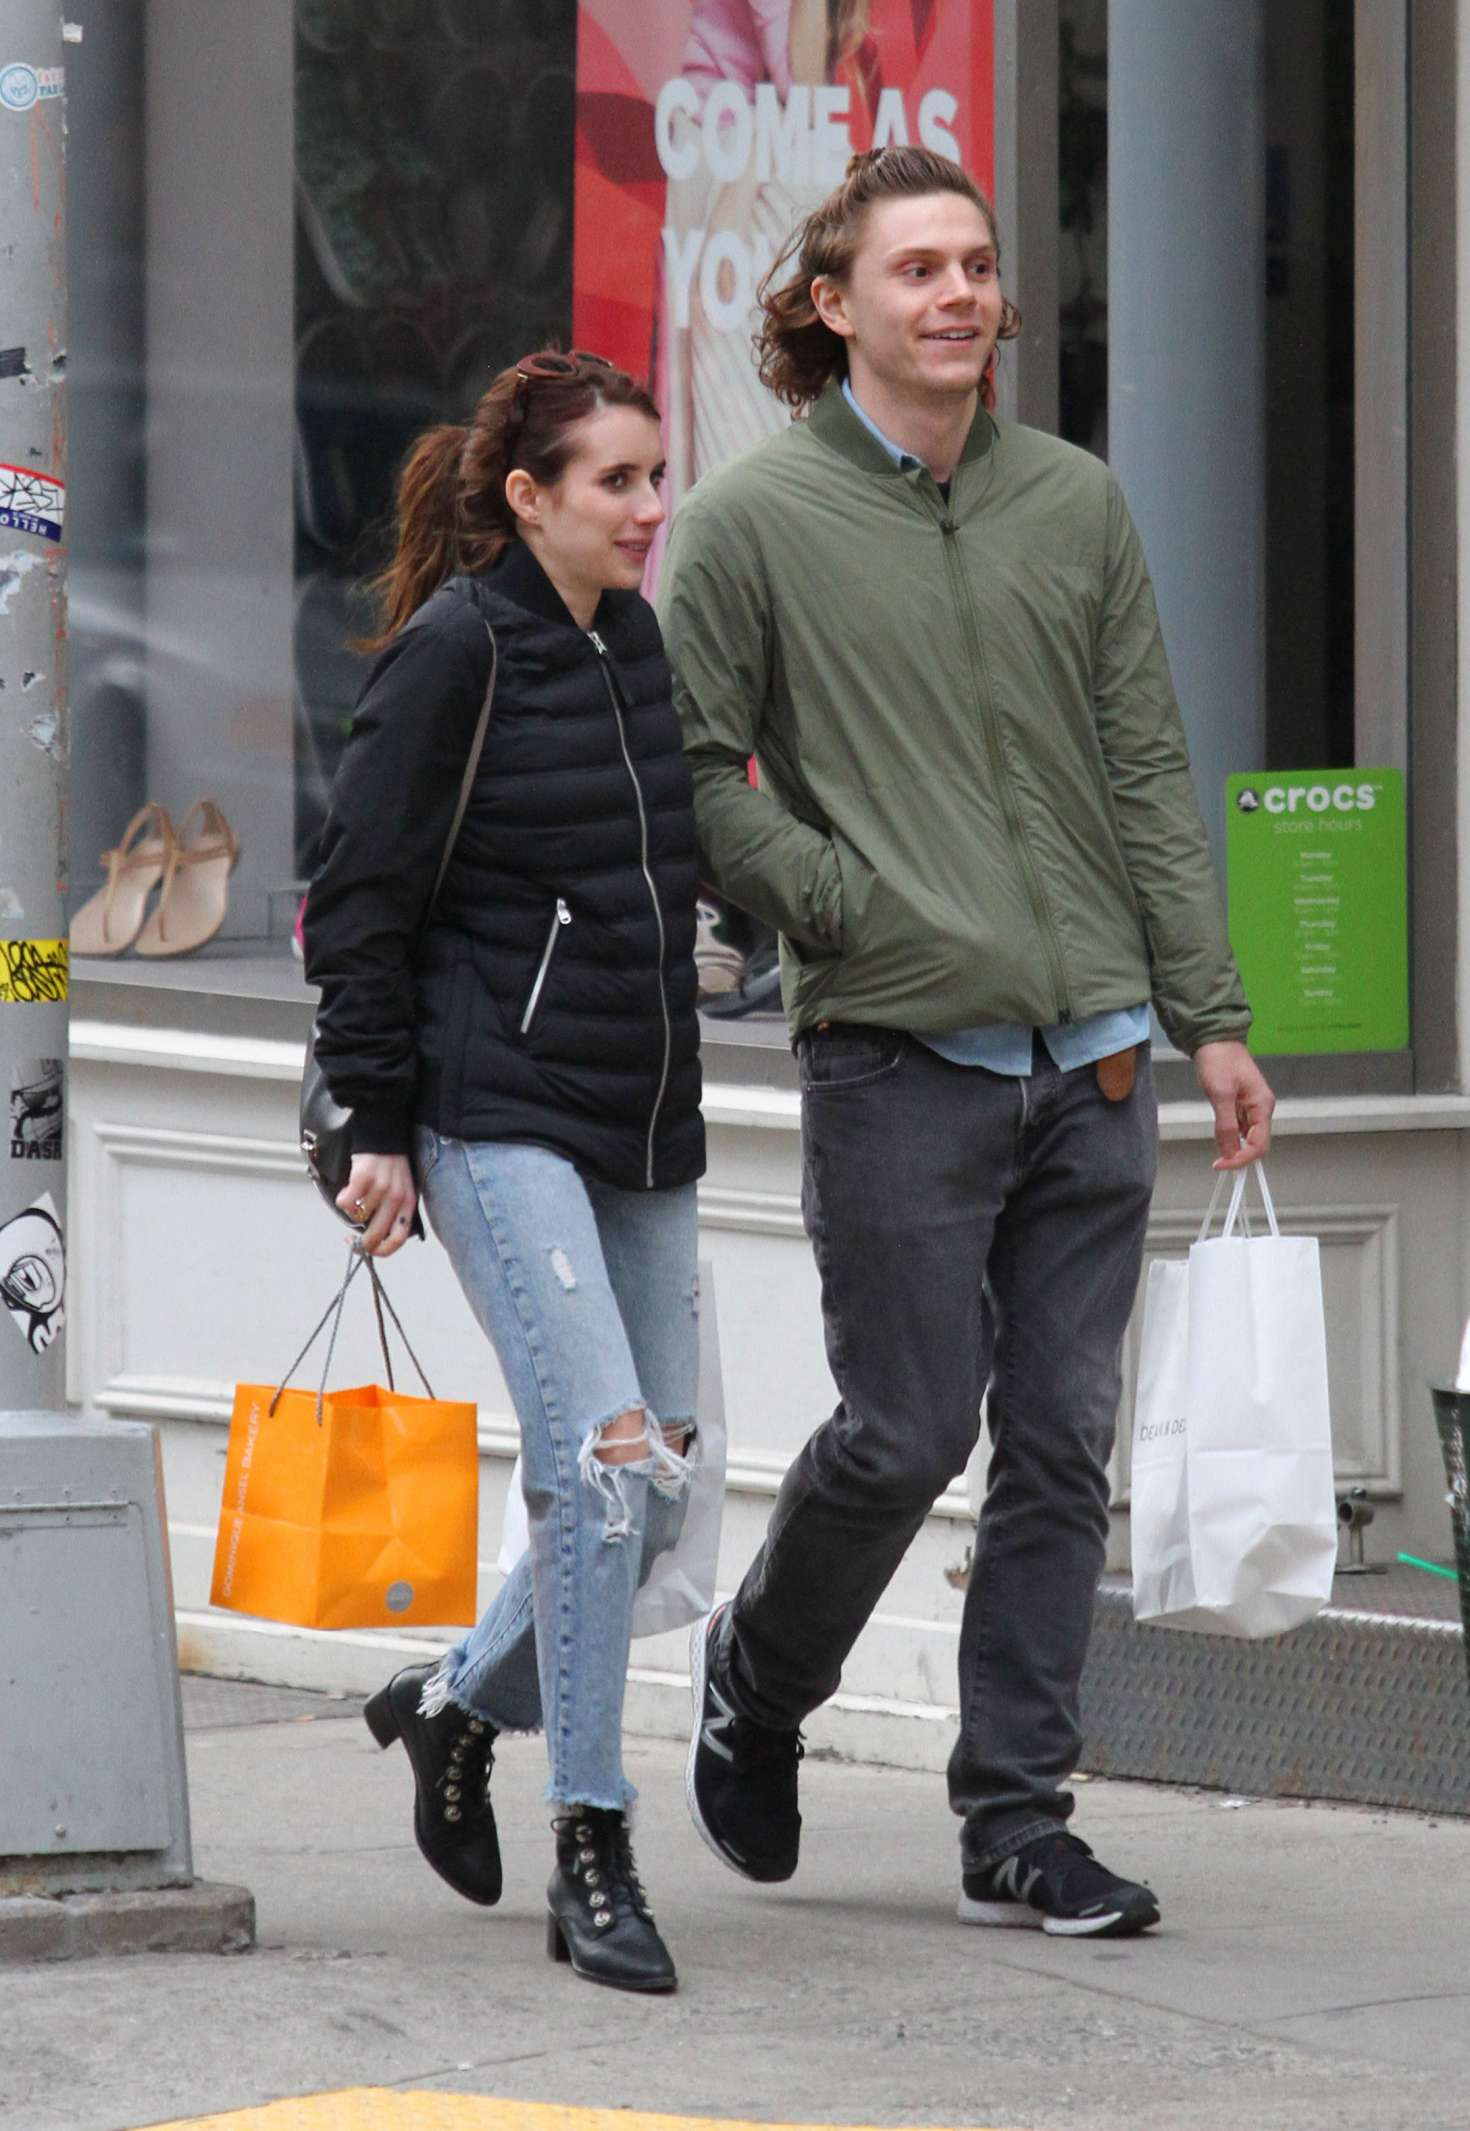 Emma Roberts with boyfriend in NYC Katy Perry